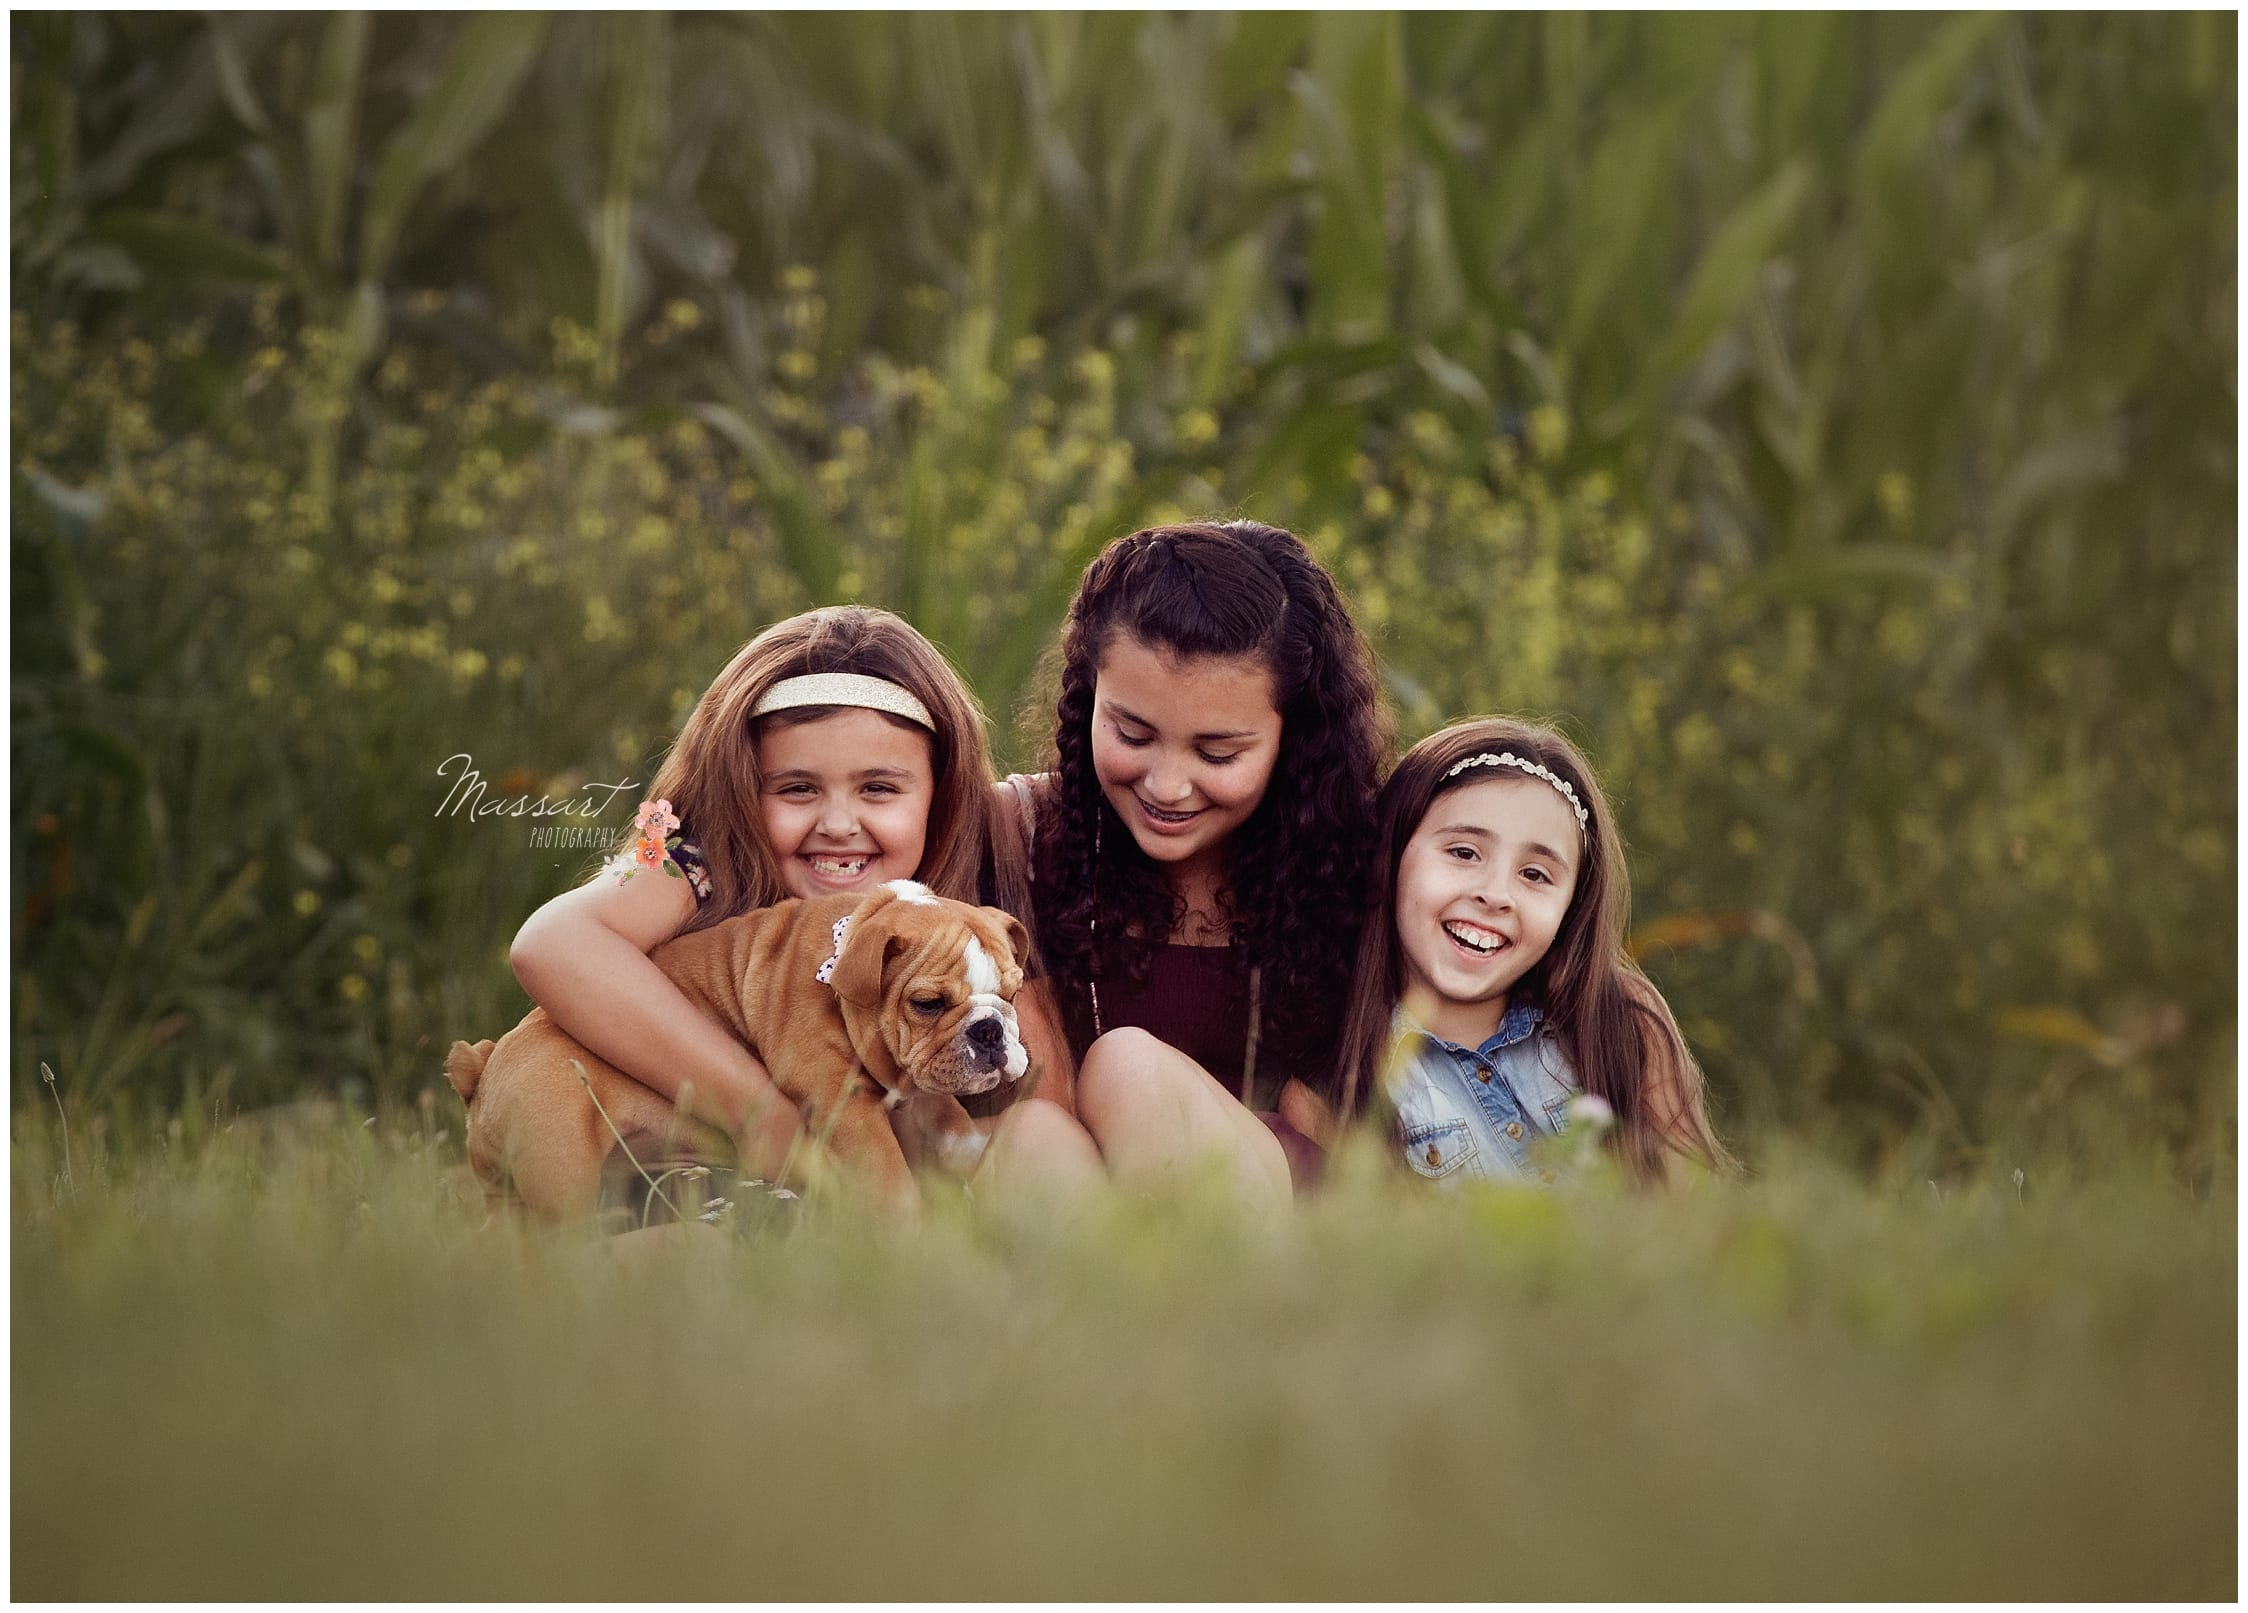 Siblings with their new dog outdoors during family portrait session photographed by Massart Photography RI